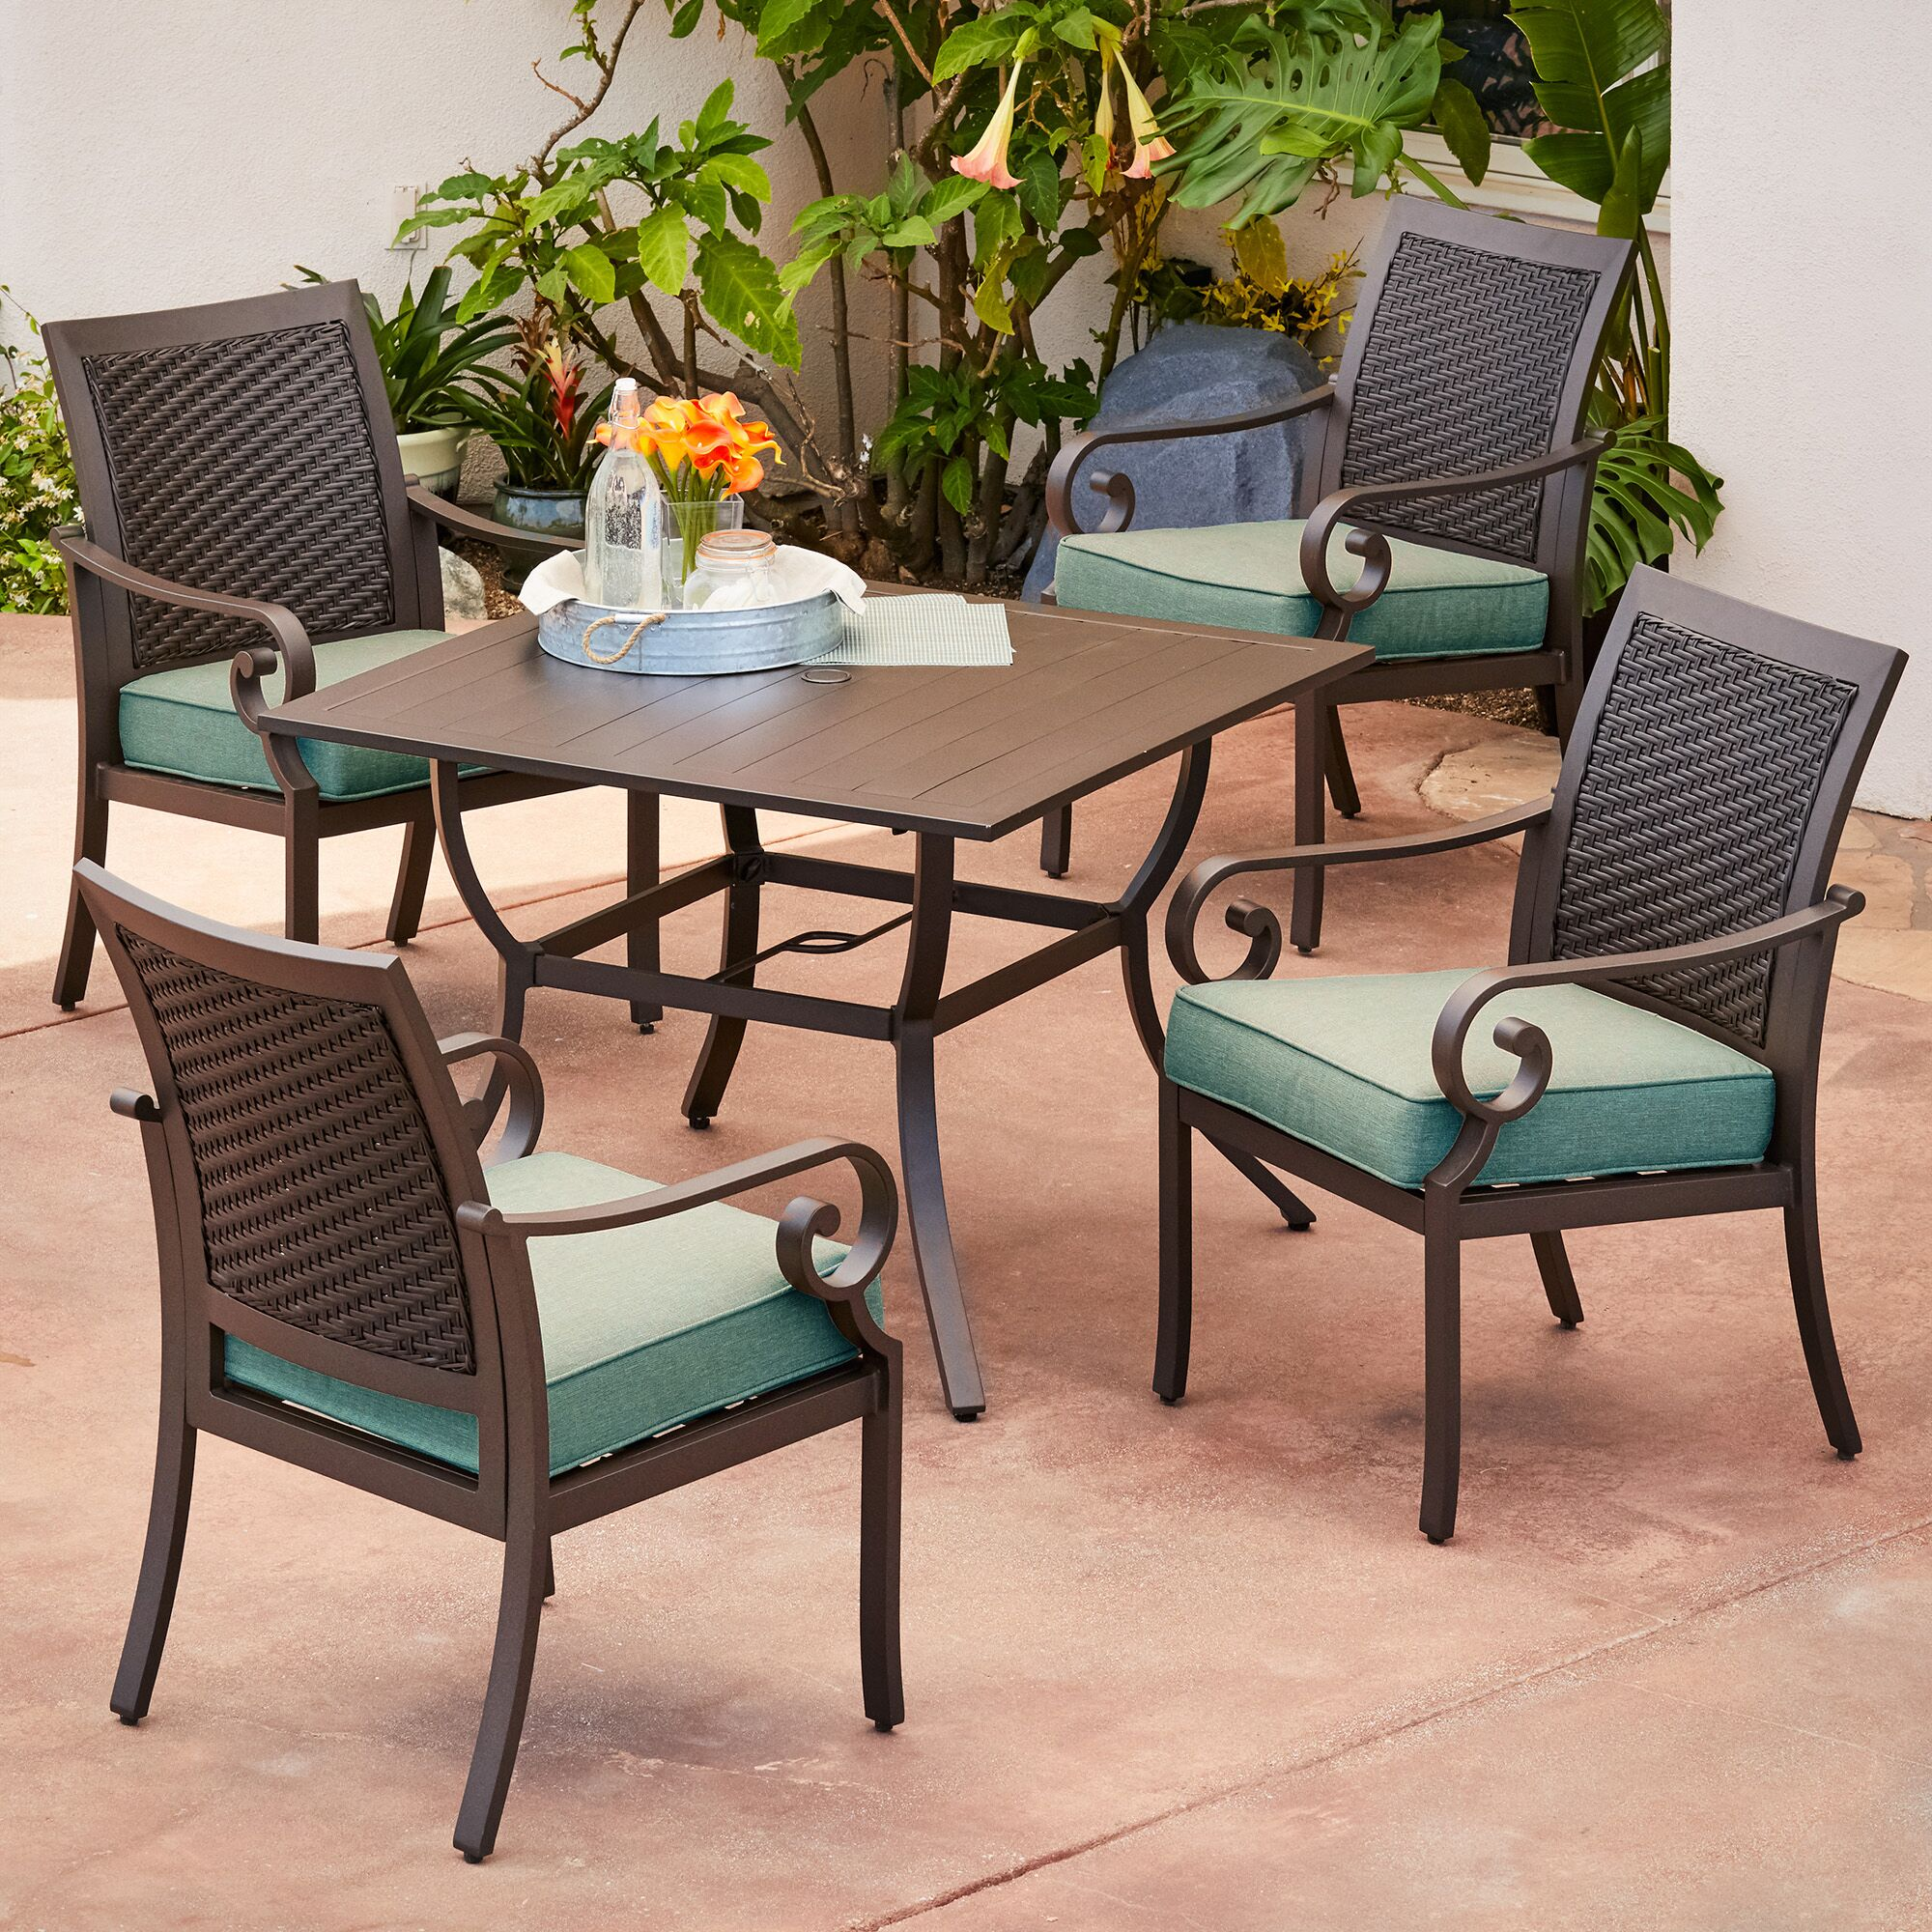 Kingston Seymour Milano 5 Piece Dining Set With Cushions Cushion Color: Teal